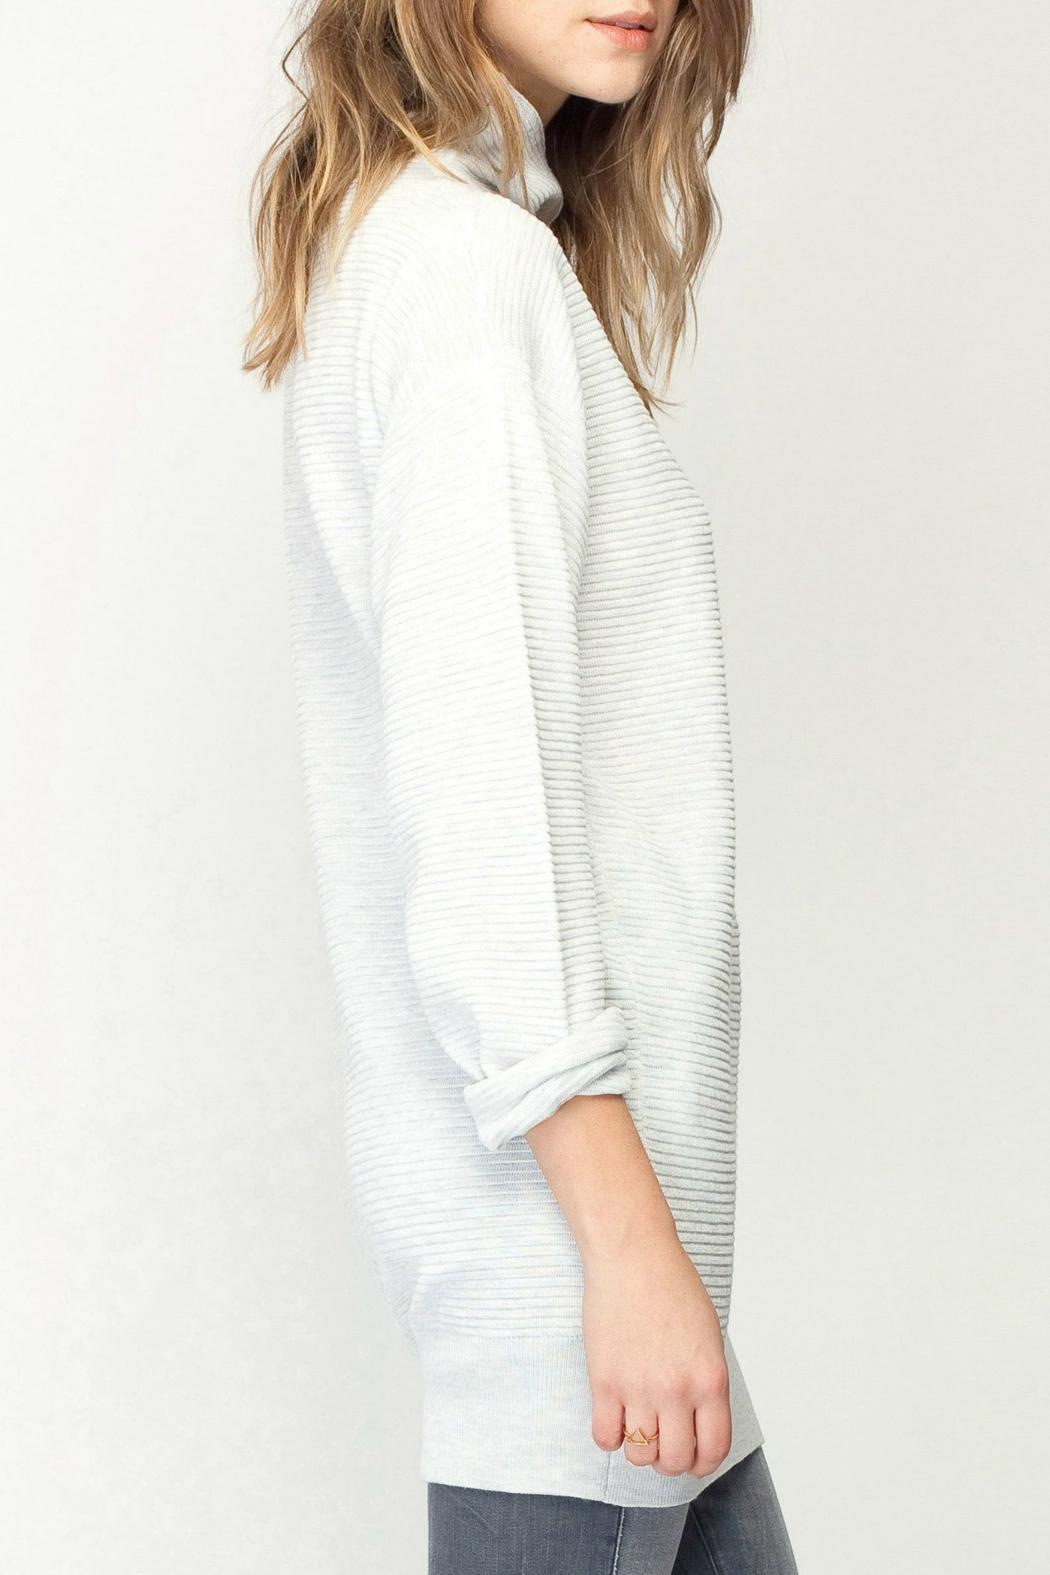 Gentle Fawn Opus Sweater From Canada By Envy Shoptiques